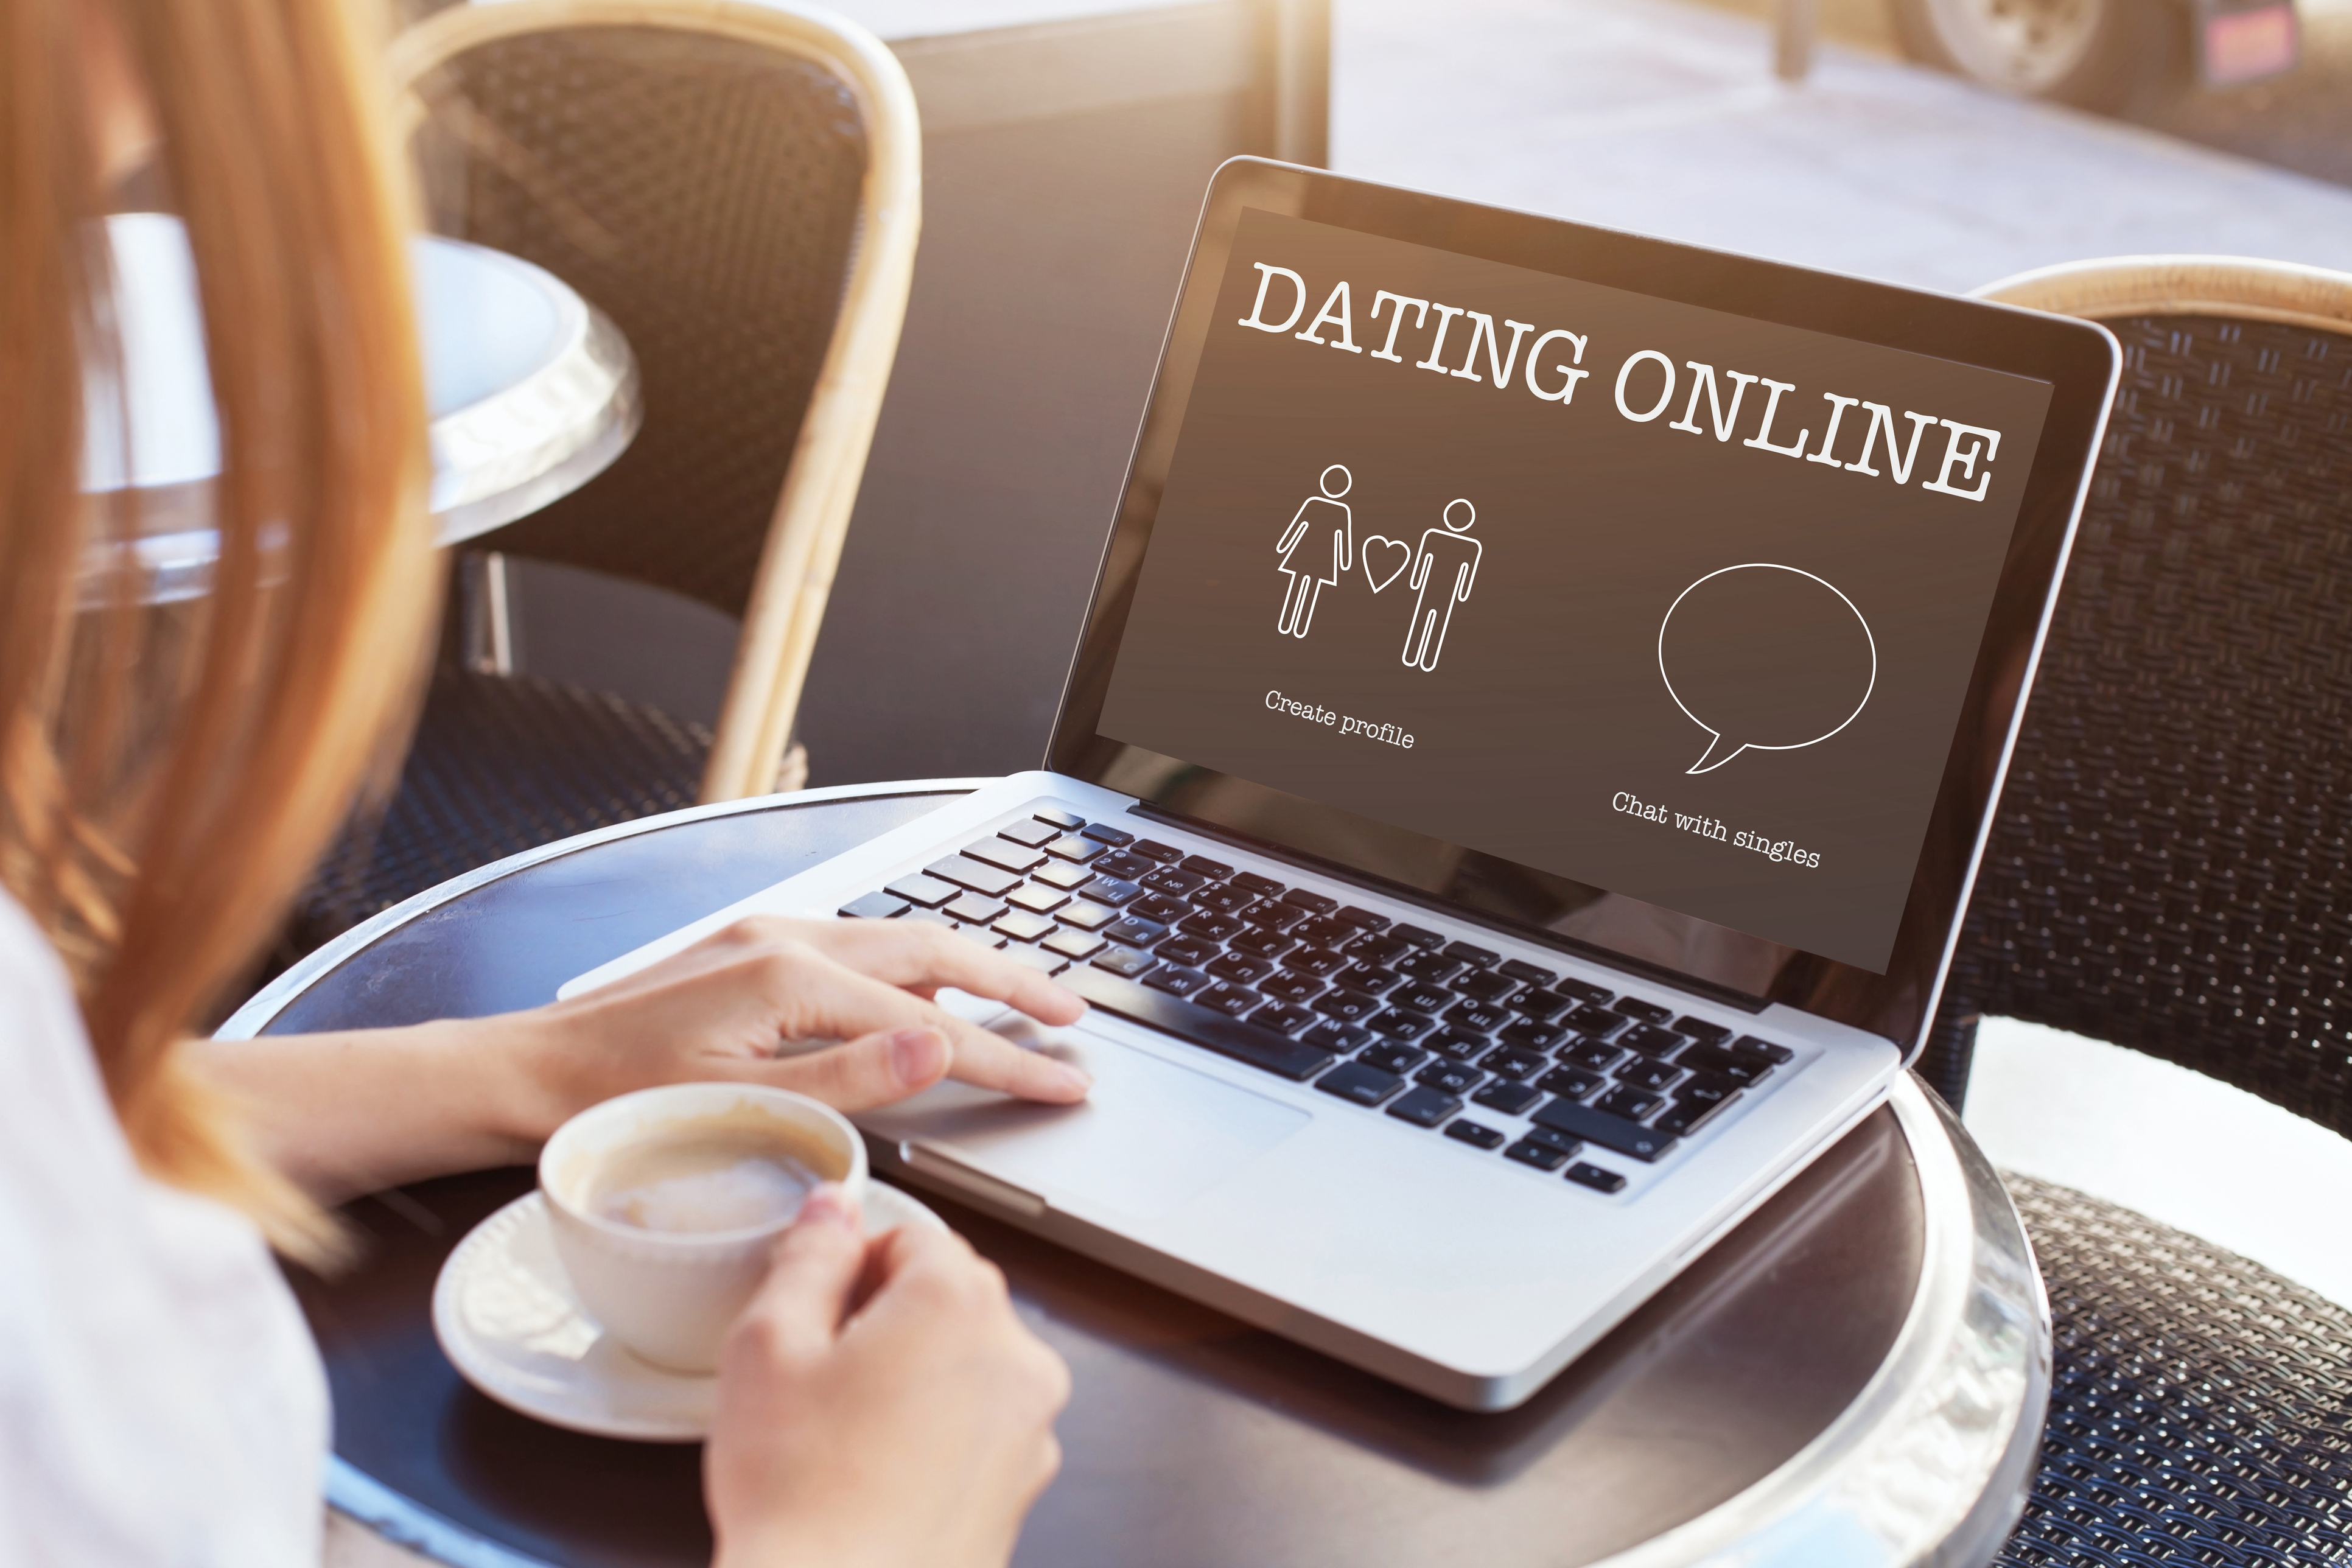 Do You Think It's Possible To Find True Love On A Dating Website?